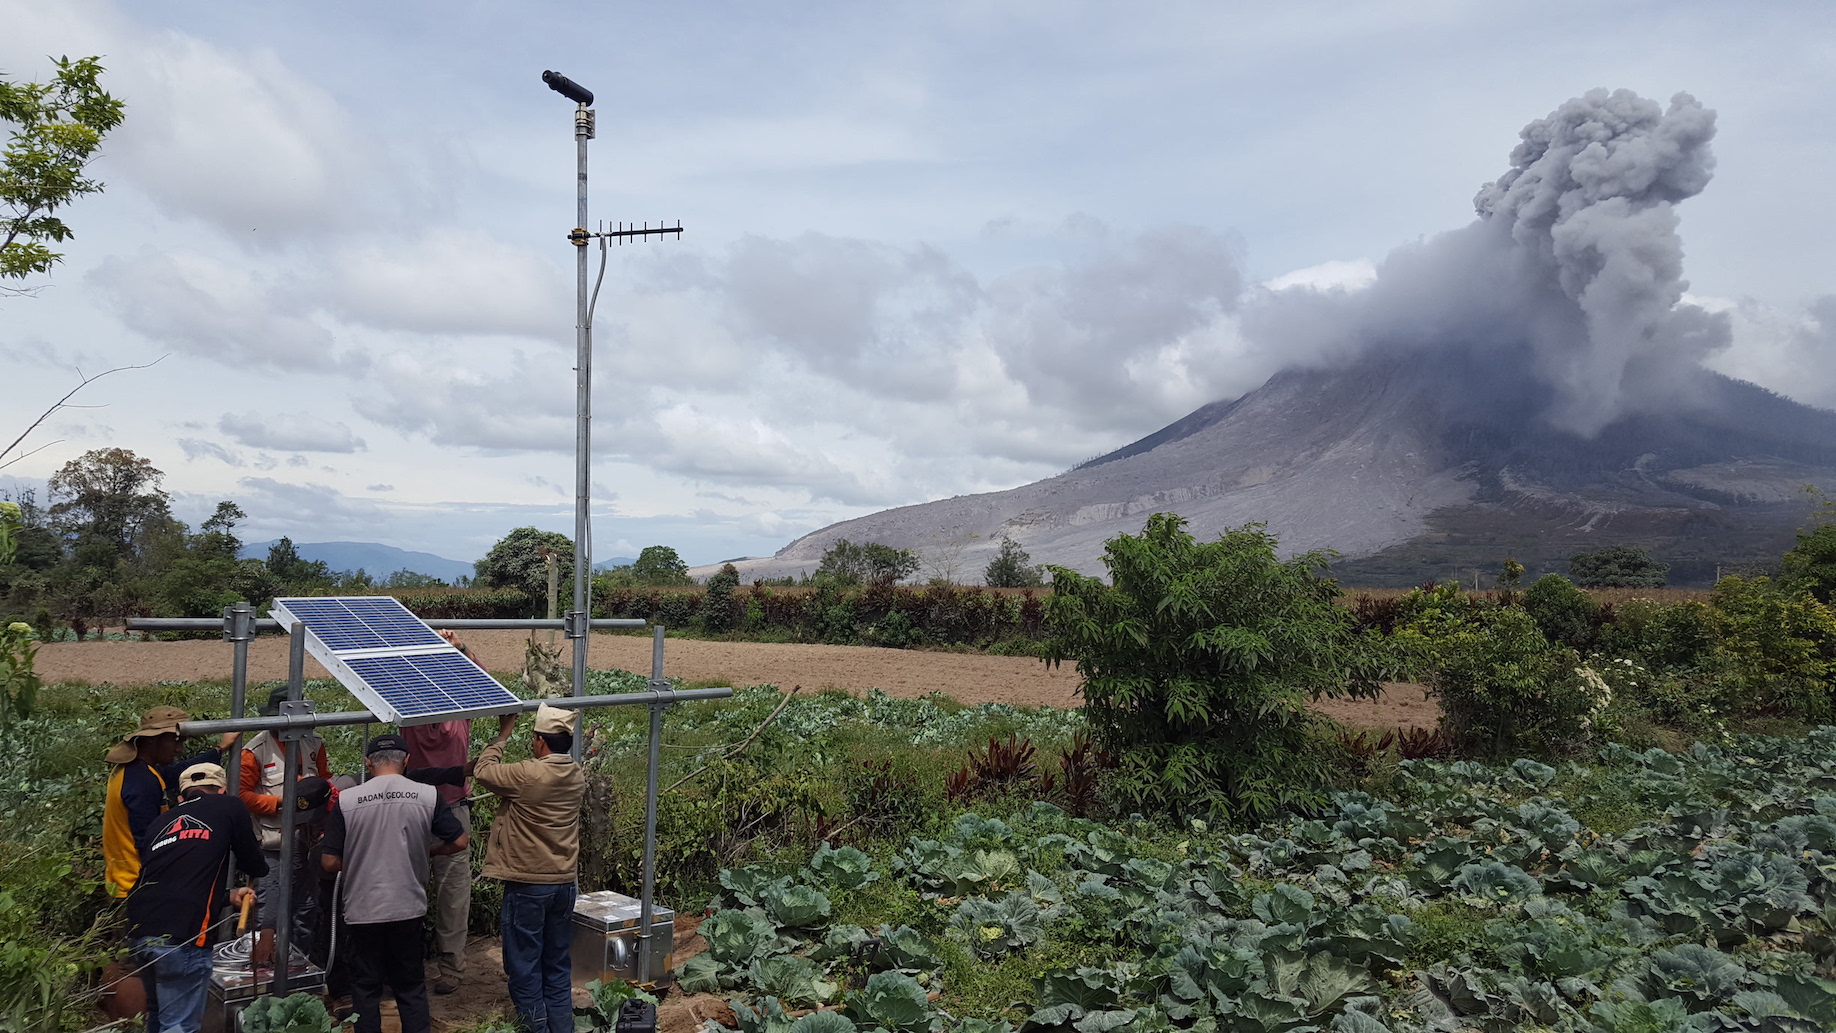 Installation of a telemetered, solar-powered scanning spectrometer in 2016 at Sinabung volcano in Sumatra, Indonesia. The instrument measures the amount of sulfur dioxide gas emitted from the volcano, which helps forecast volcanic activity. Credit: USGS